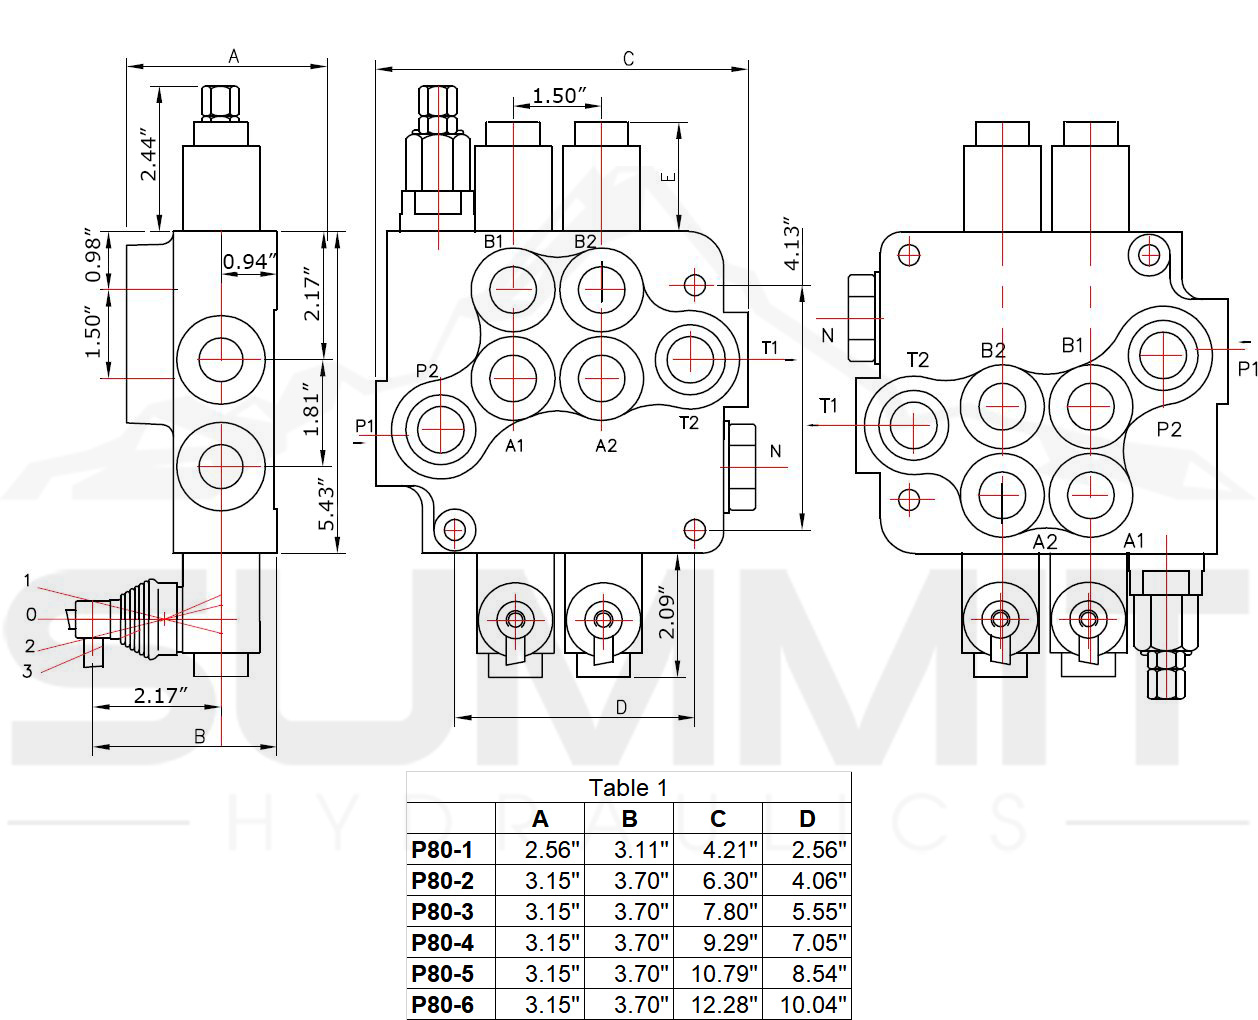 Hydraulic Directional Control Valve For Tractor Loader W Joystick 2 Spool 21 Gpm